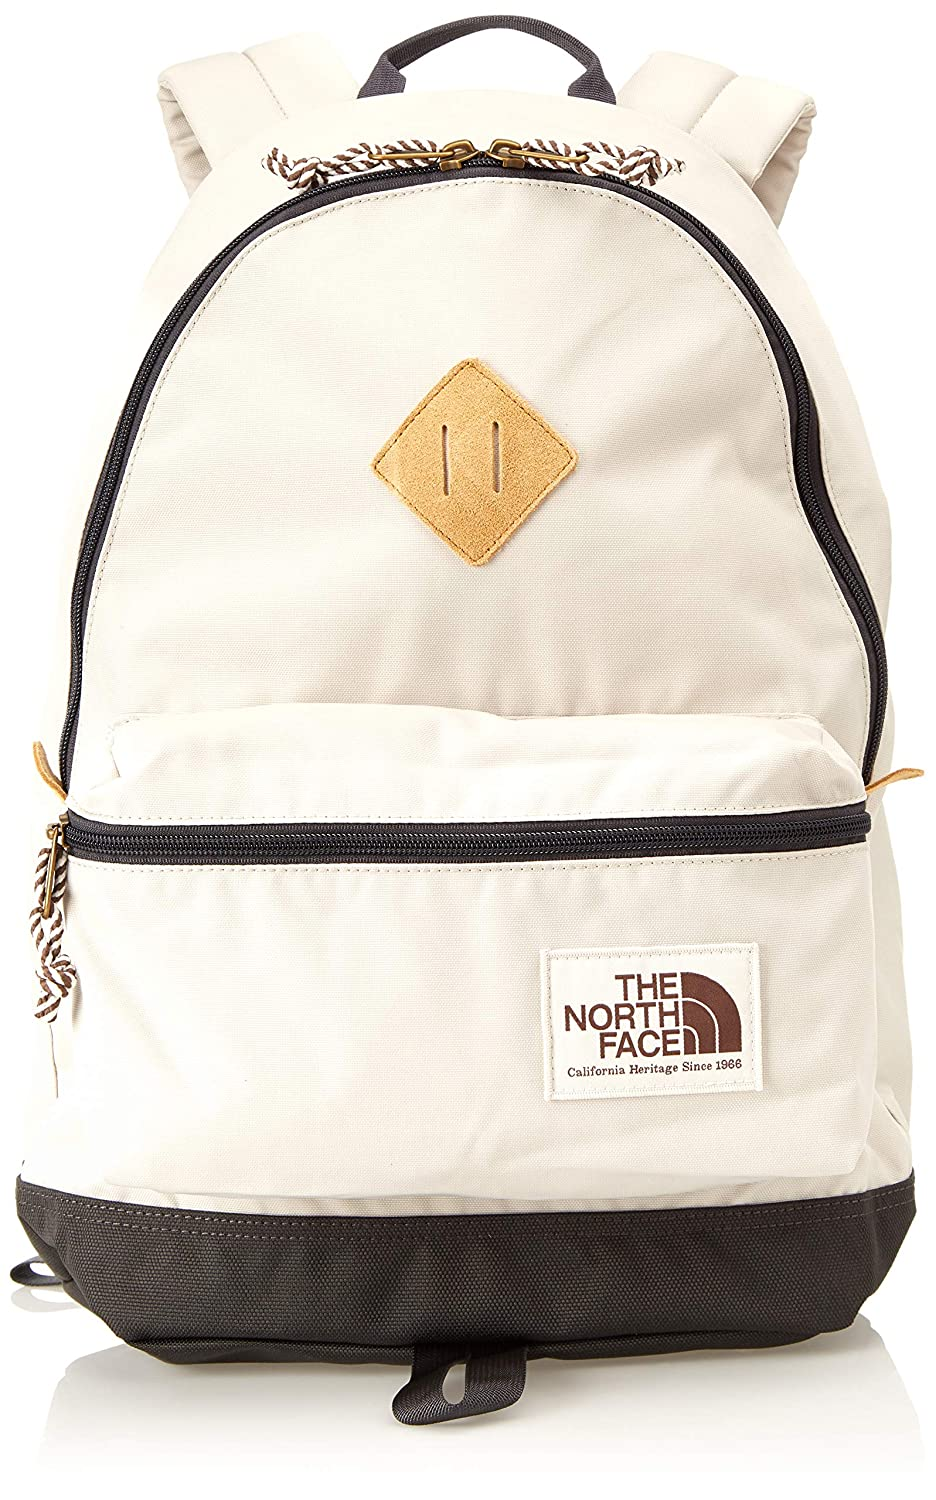 17db61d2b THE NORTH FACE Unisex's Berkeley Backpack, Peyote Beige/Asphalt Grey, One  Size: Amazon.co.uk: Sports & Outdoors